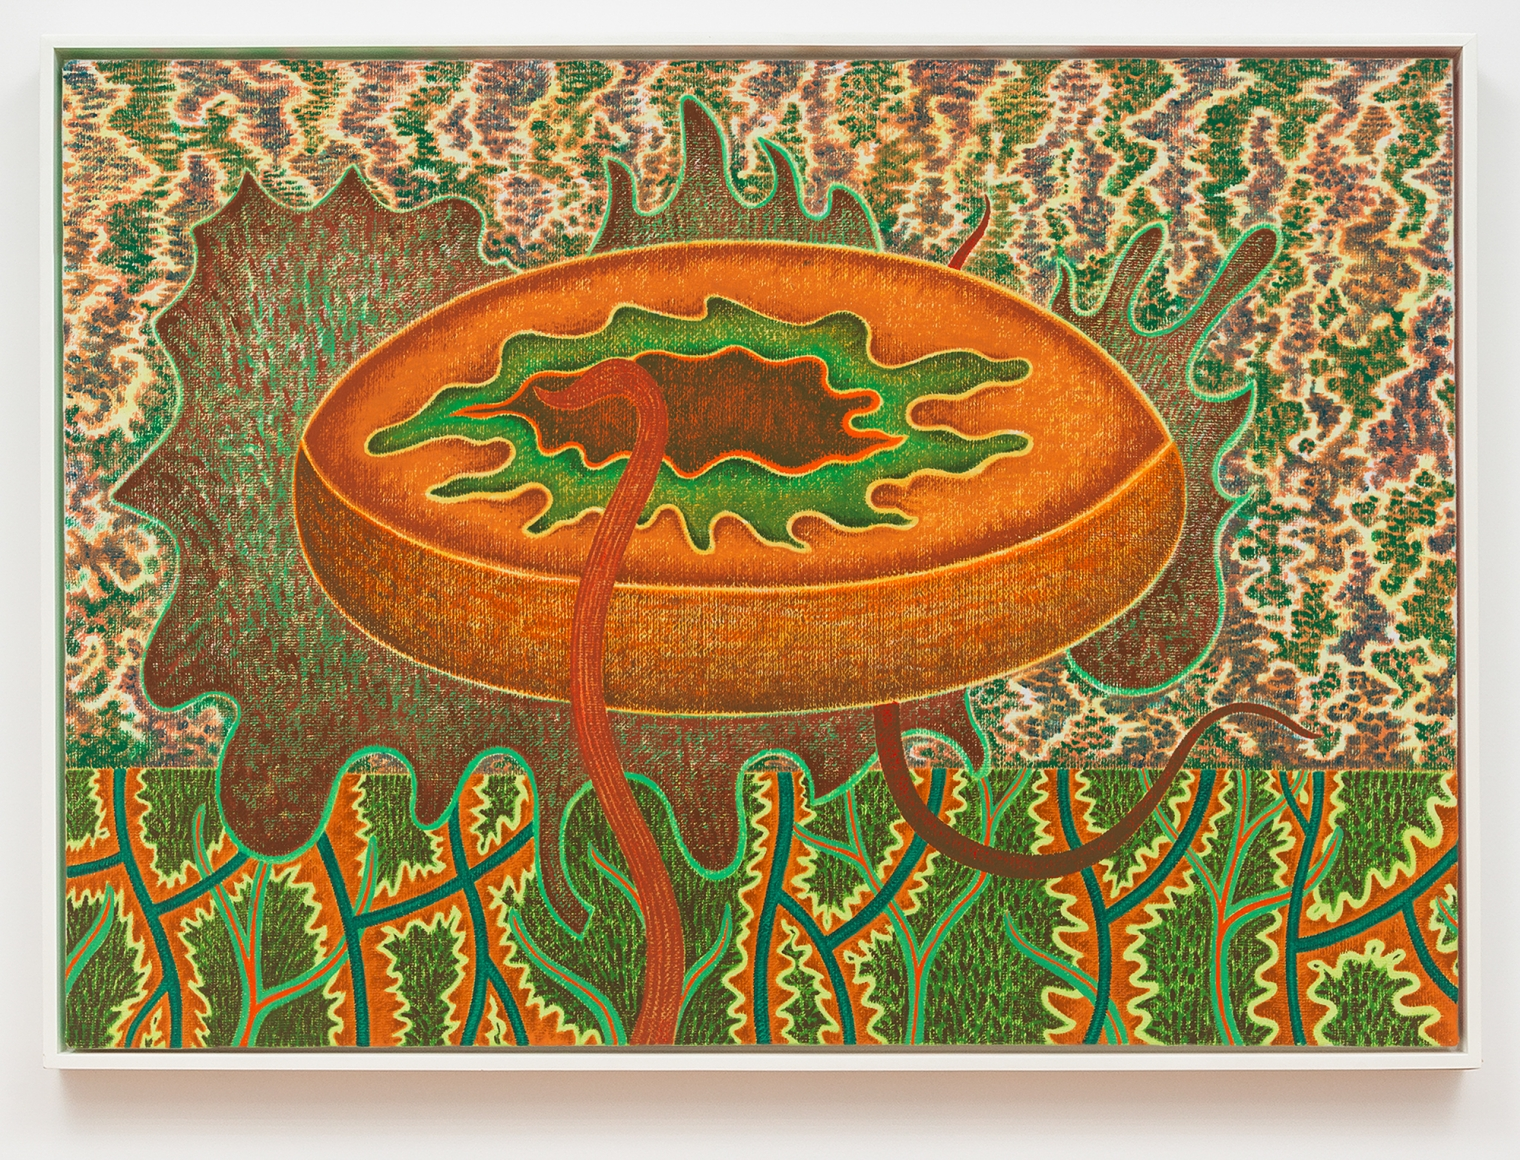 Forest Gift, 1987, Oil on canvas